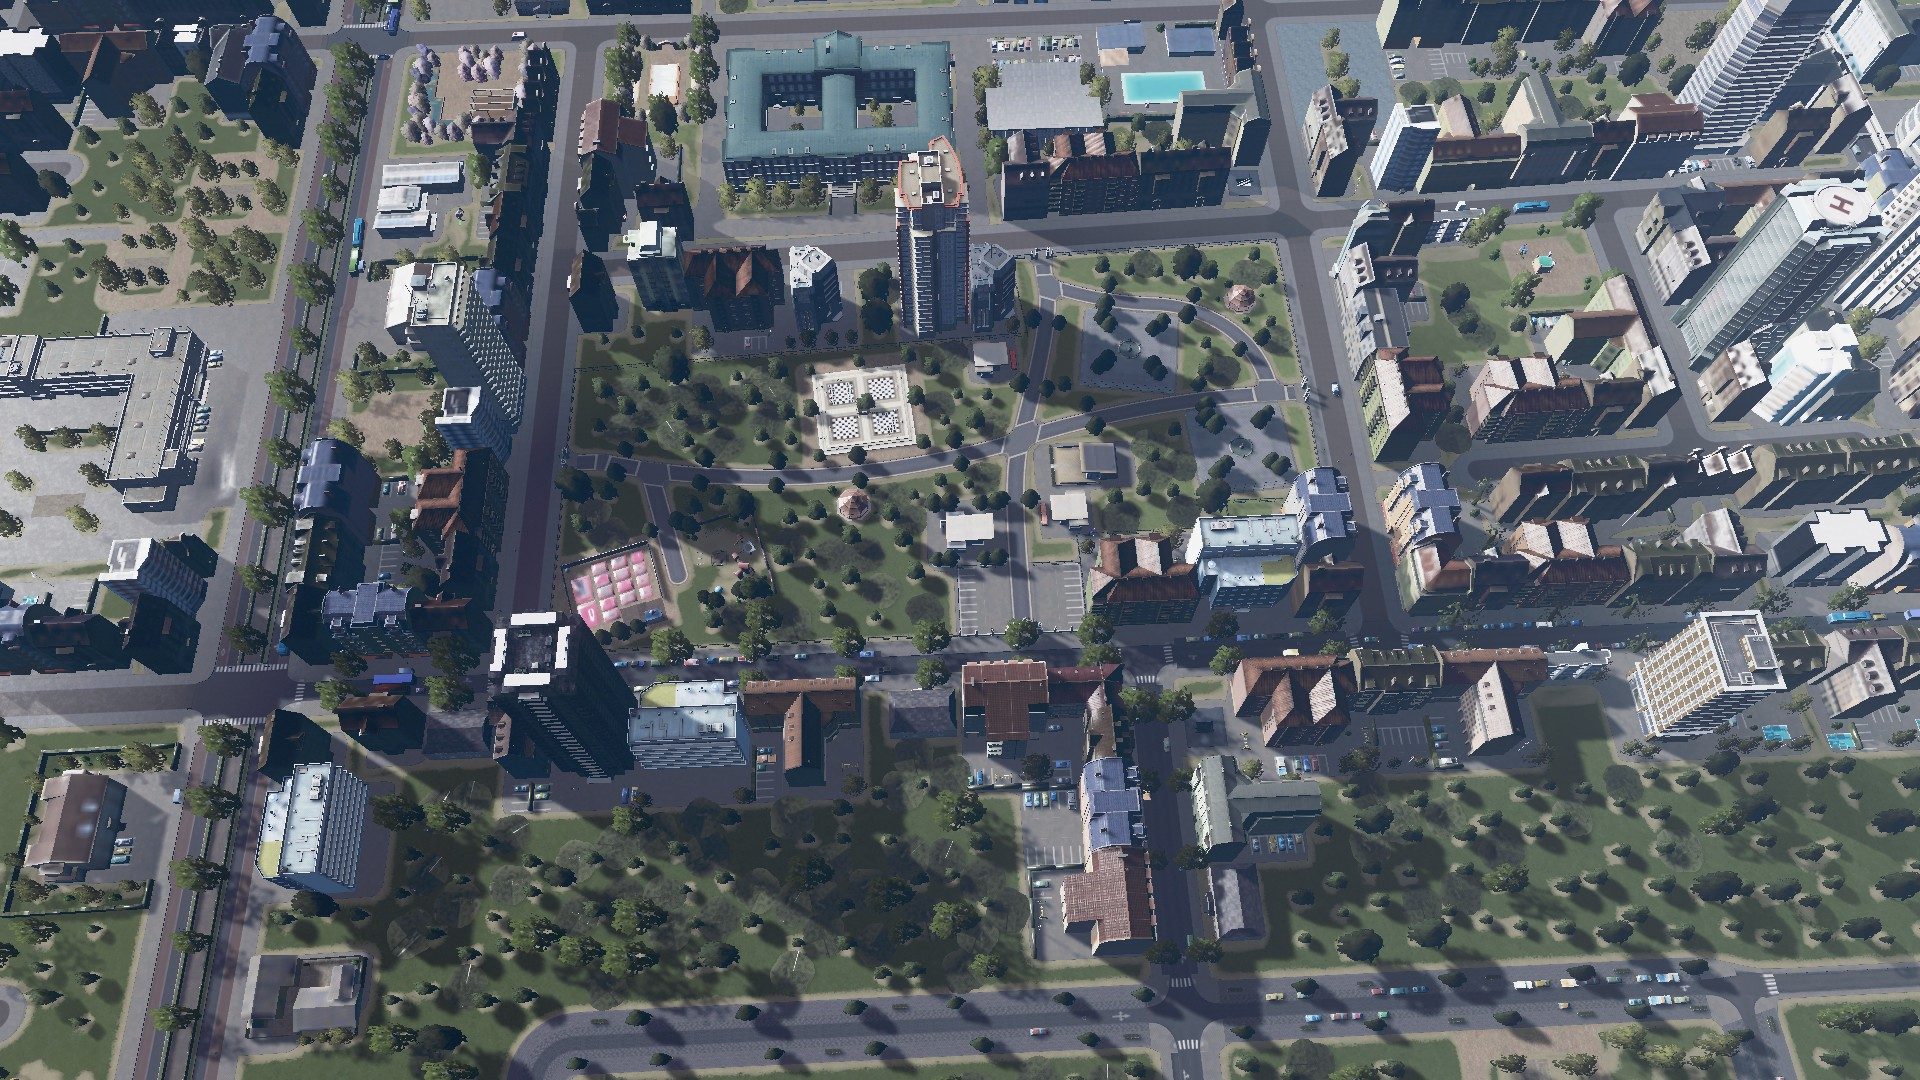 Urban Design in #CitiesSkylines? Always! Urban Design and Transport (Integrated Planning) Evolving? I Hope So